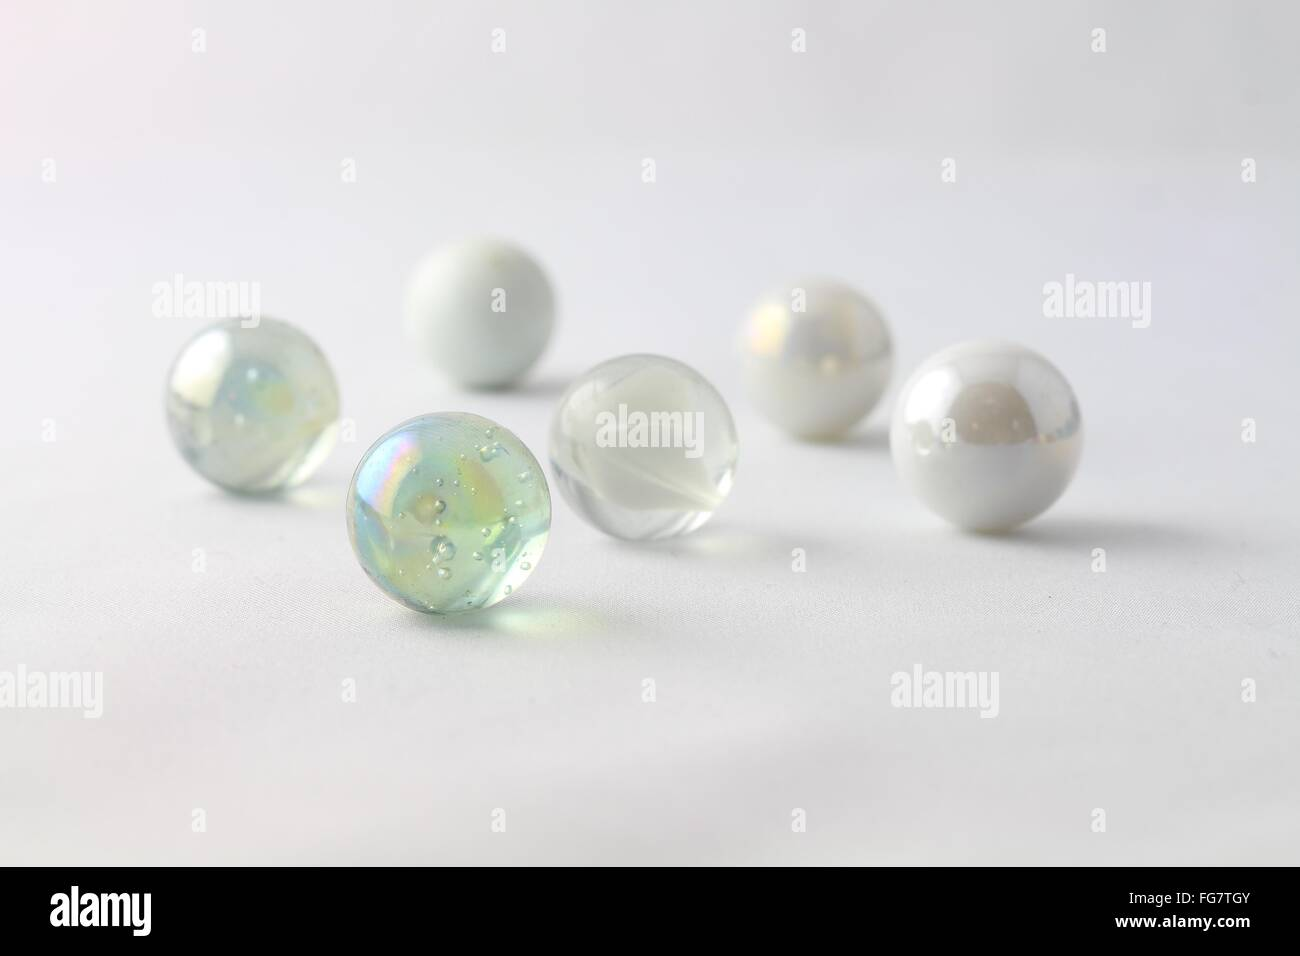 Close-Up Of Marbles Against White Background - Stock Image